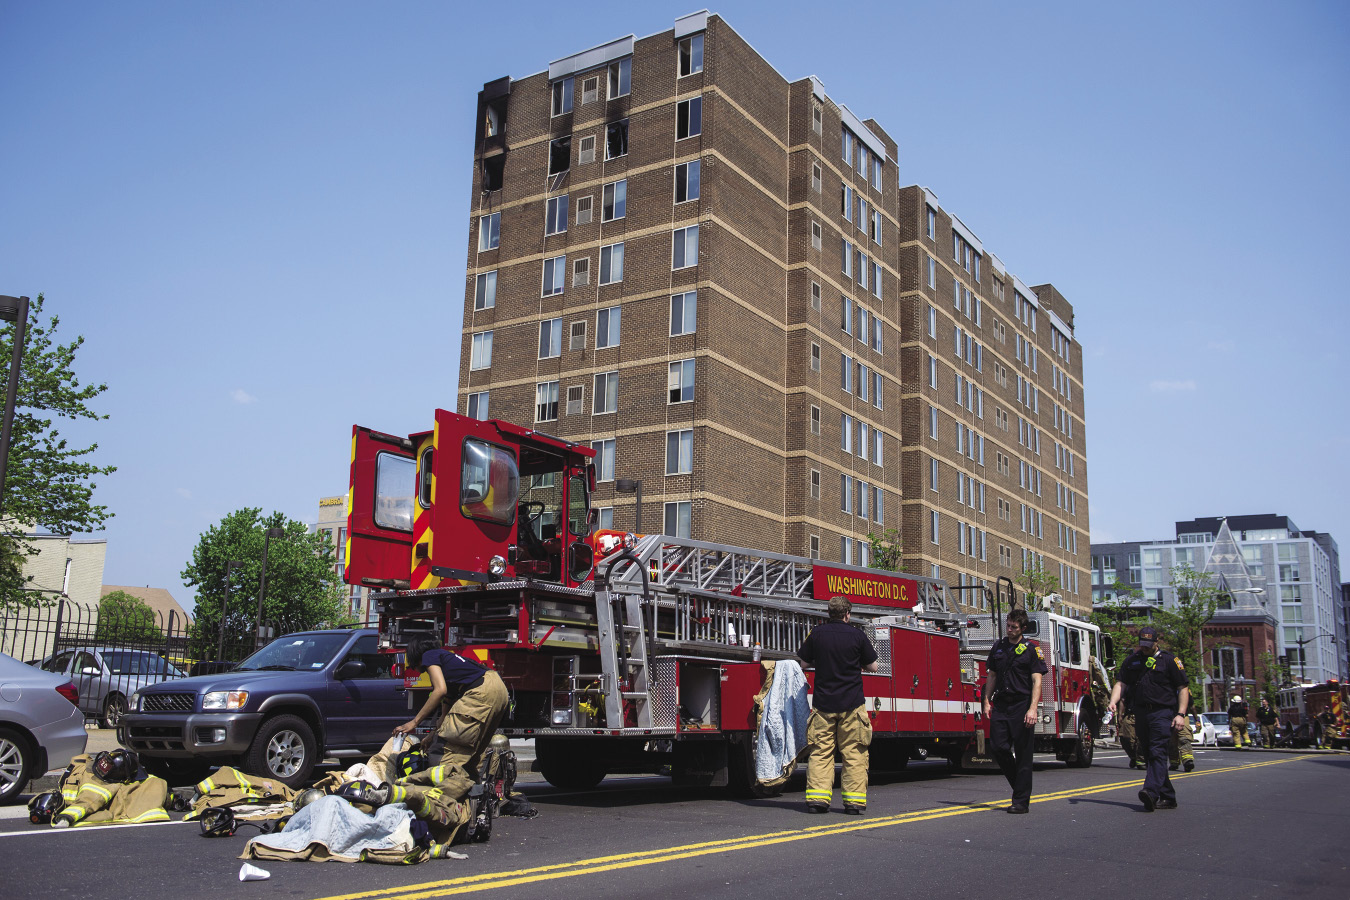 Firefighters change next to an fire apparatus that is parked next to a high rise apartment building